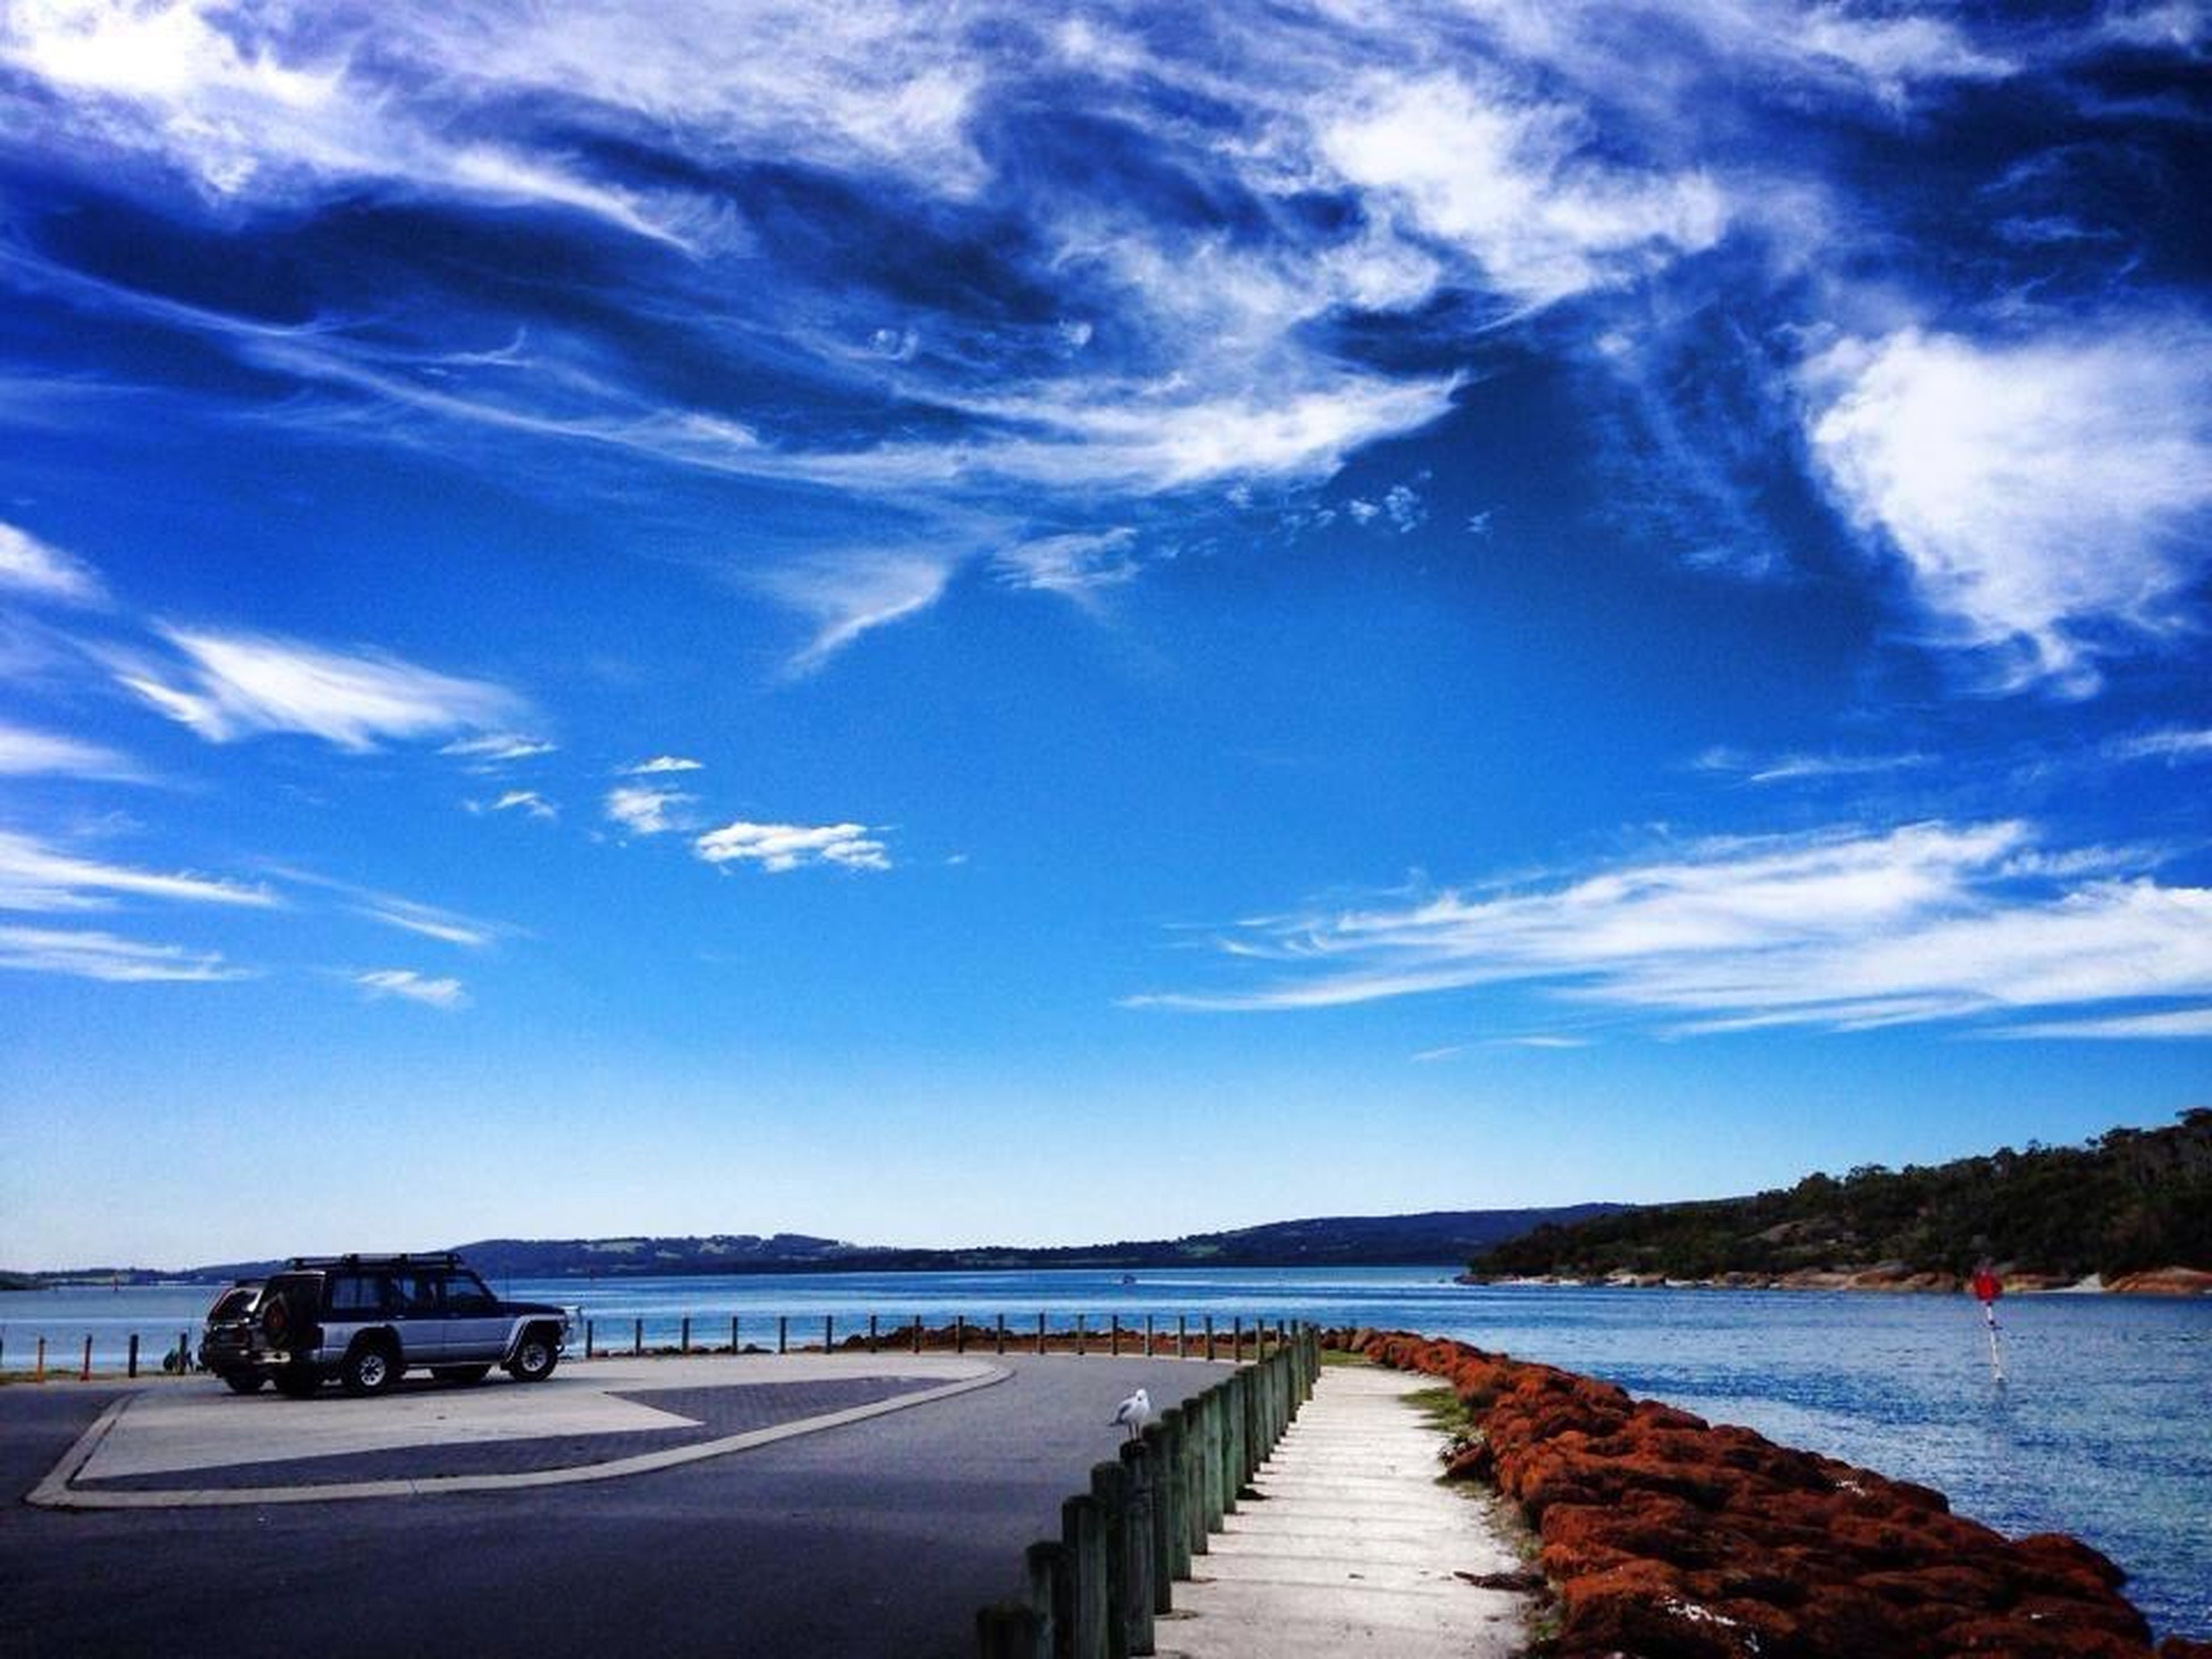 sky, the way forward, water, cloud - sky, sea, transportation, tranquil scene, tranquility, cloud, diminishing perspective, road, nature, scenics, beauty in nature, cloudy, blue, vanishing point, horizon over water, outdoors, beach